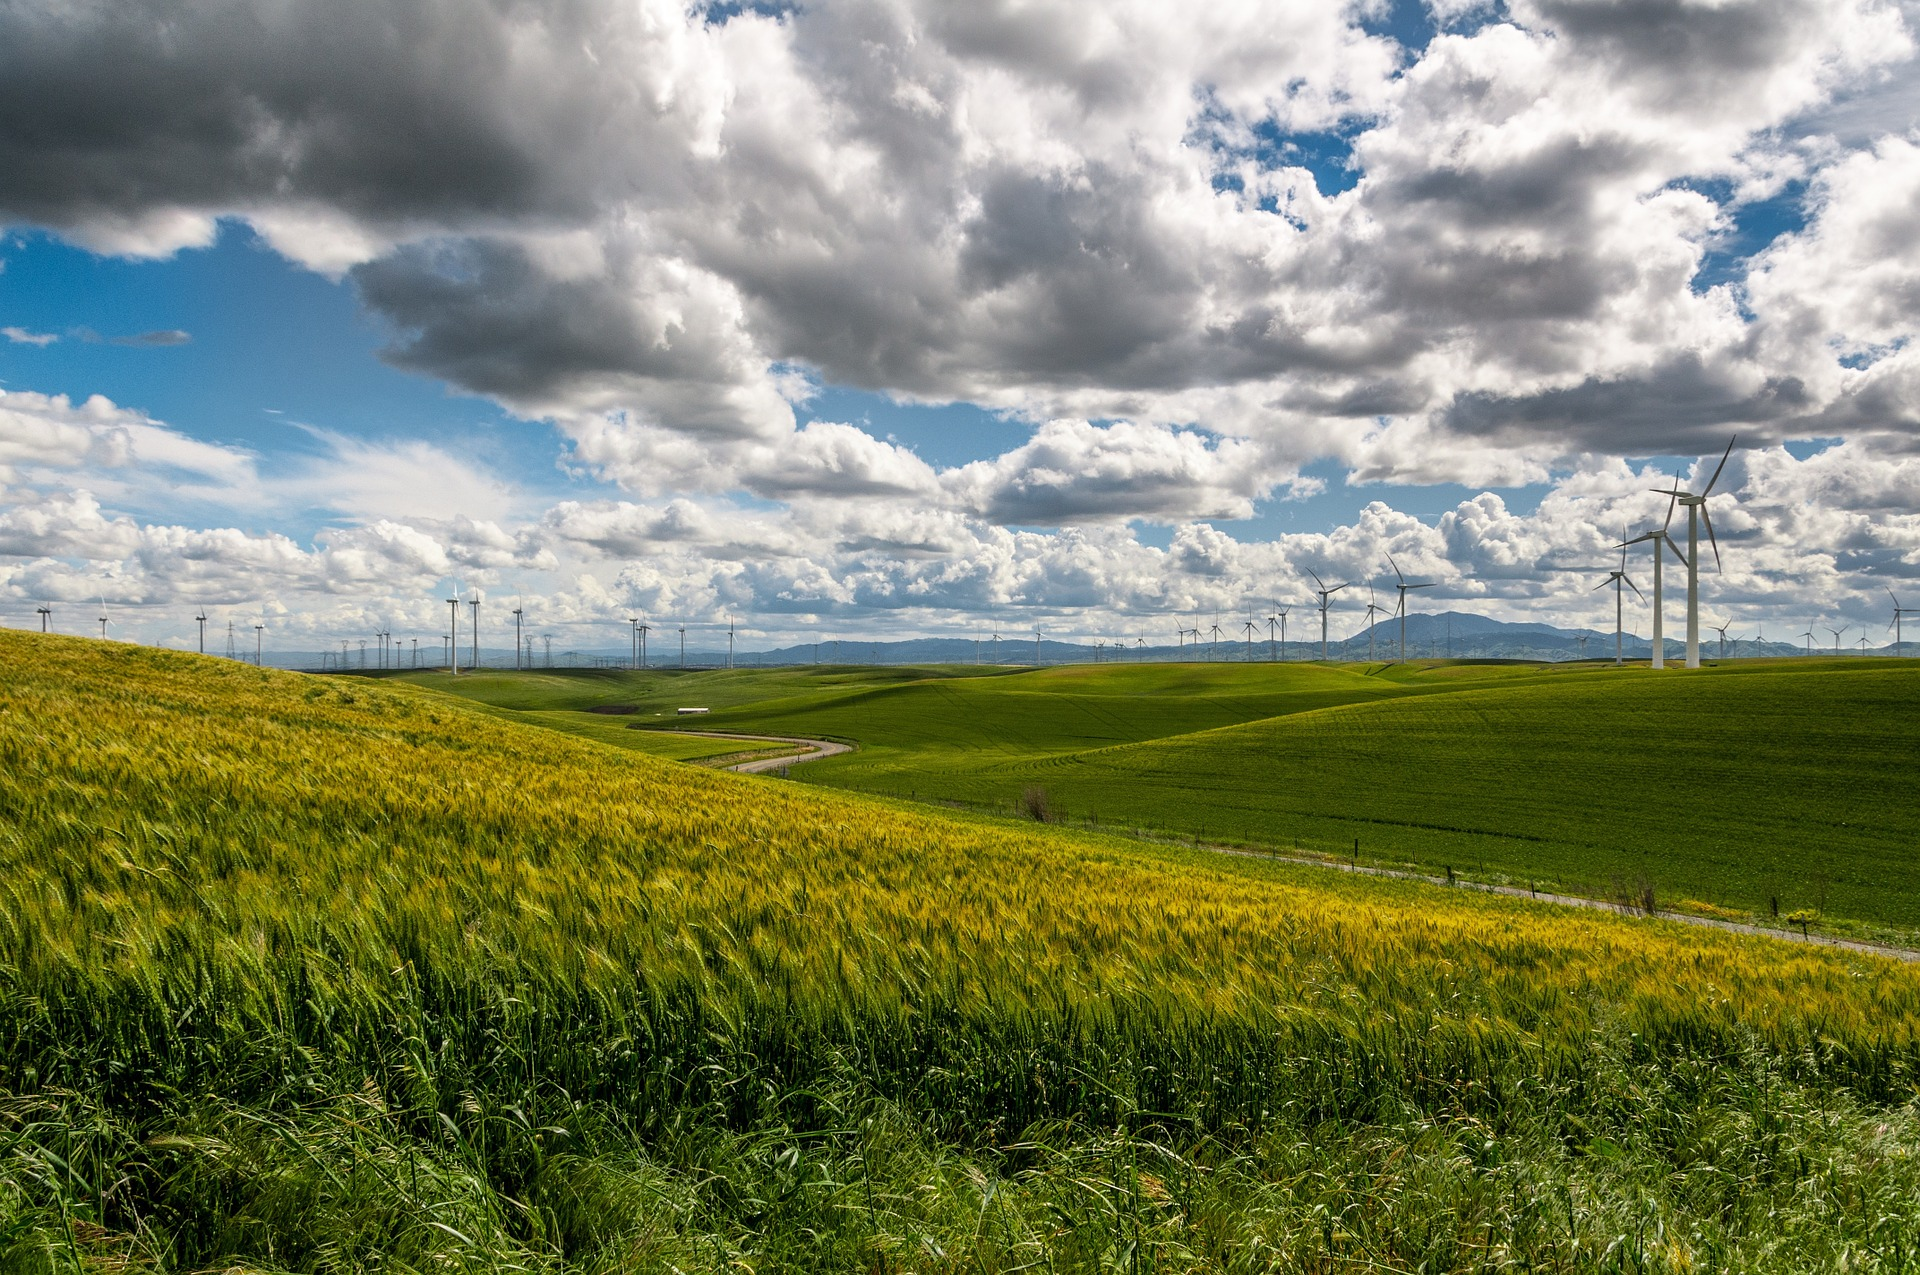 A green field with wind turbines in the background